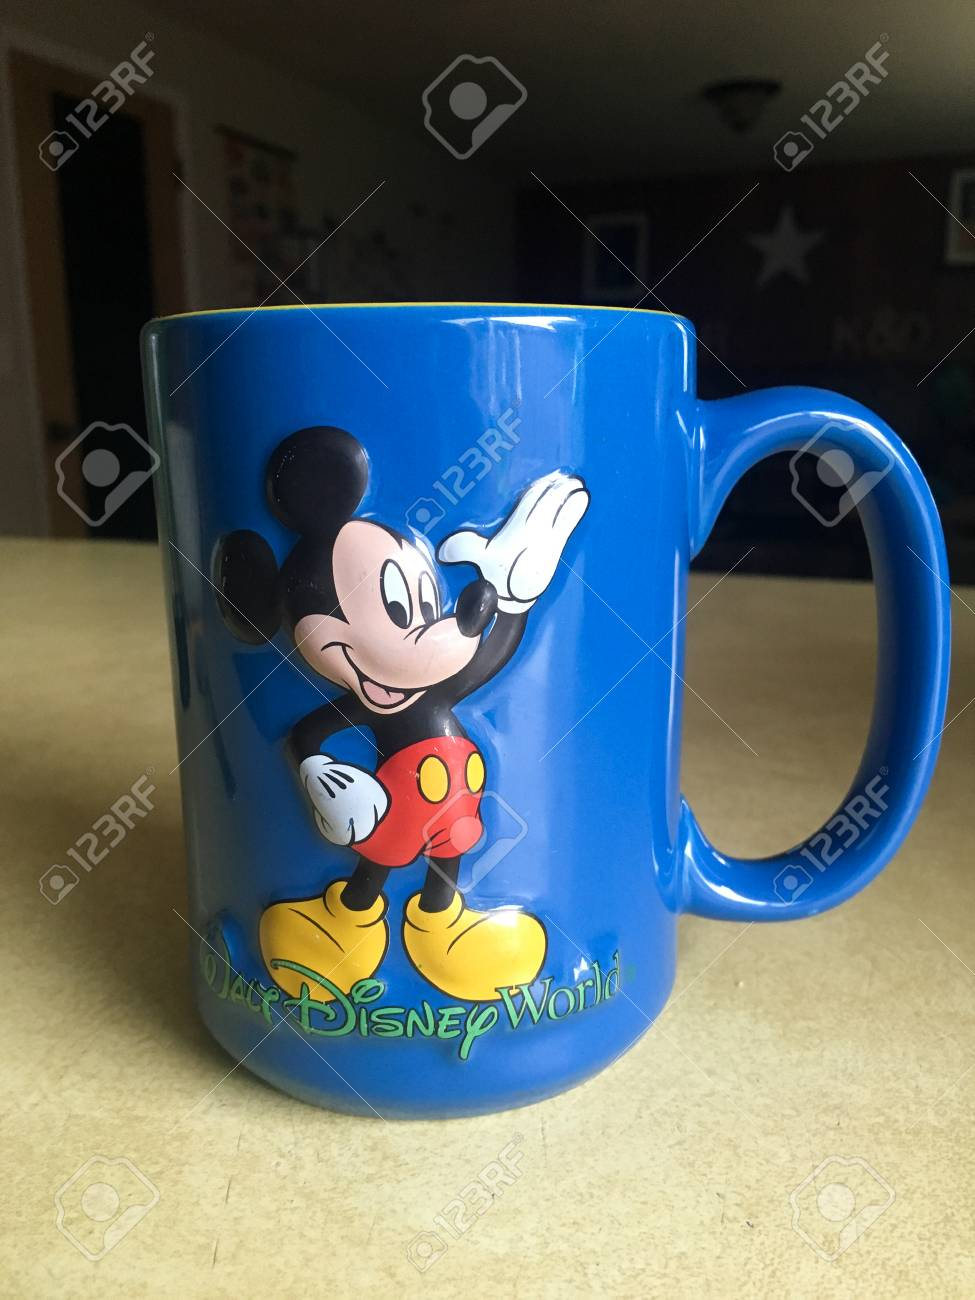 SpringfieldOr 232015Mickey October From Coffee Mug Mouse Nm80OPywvn